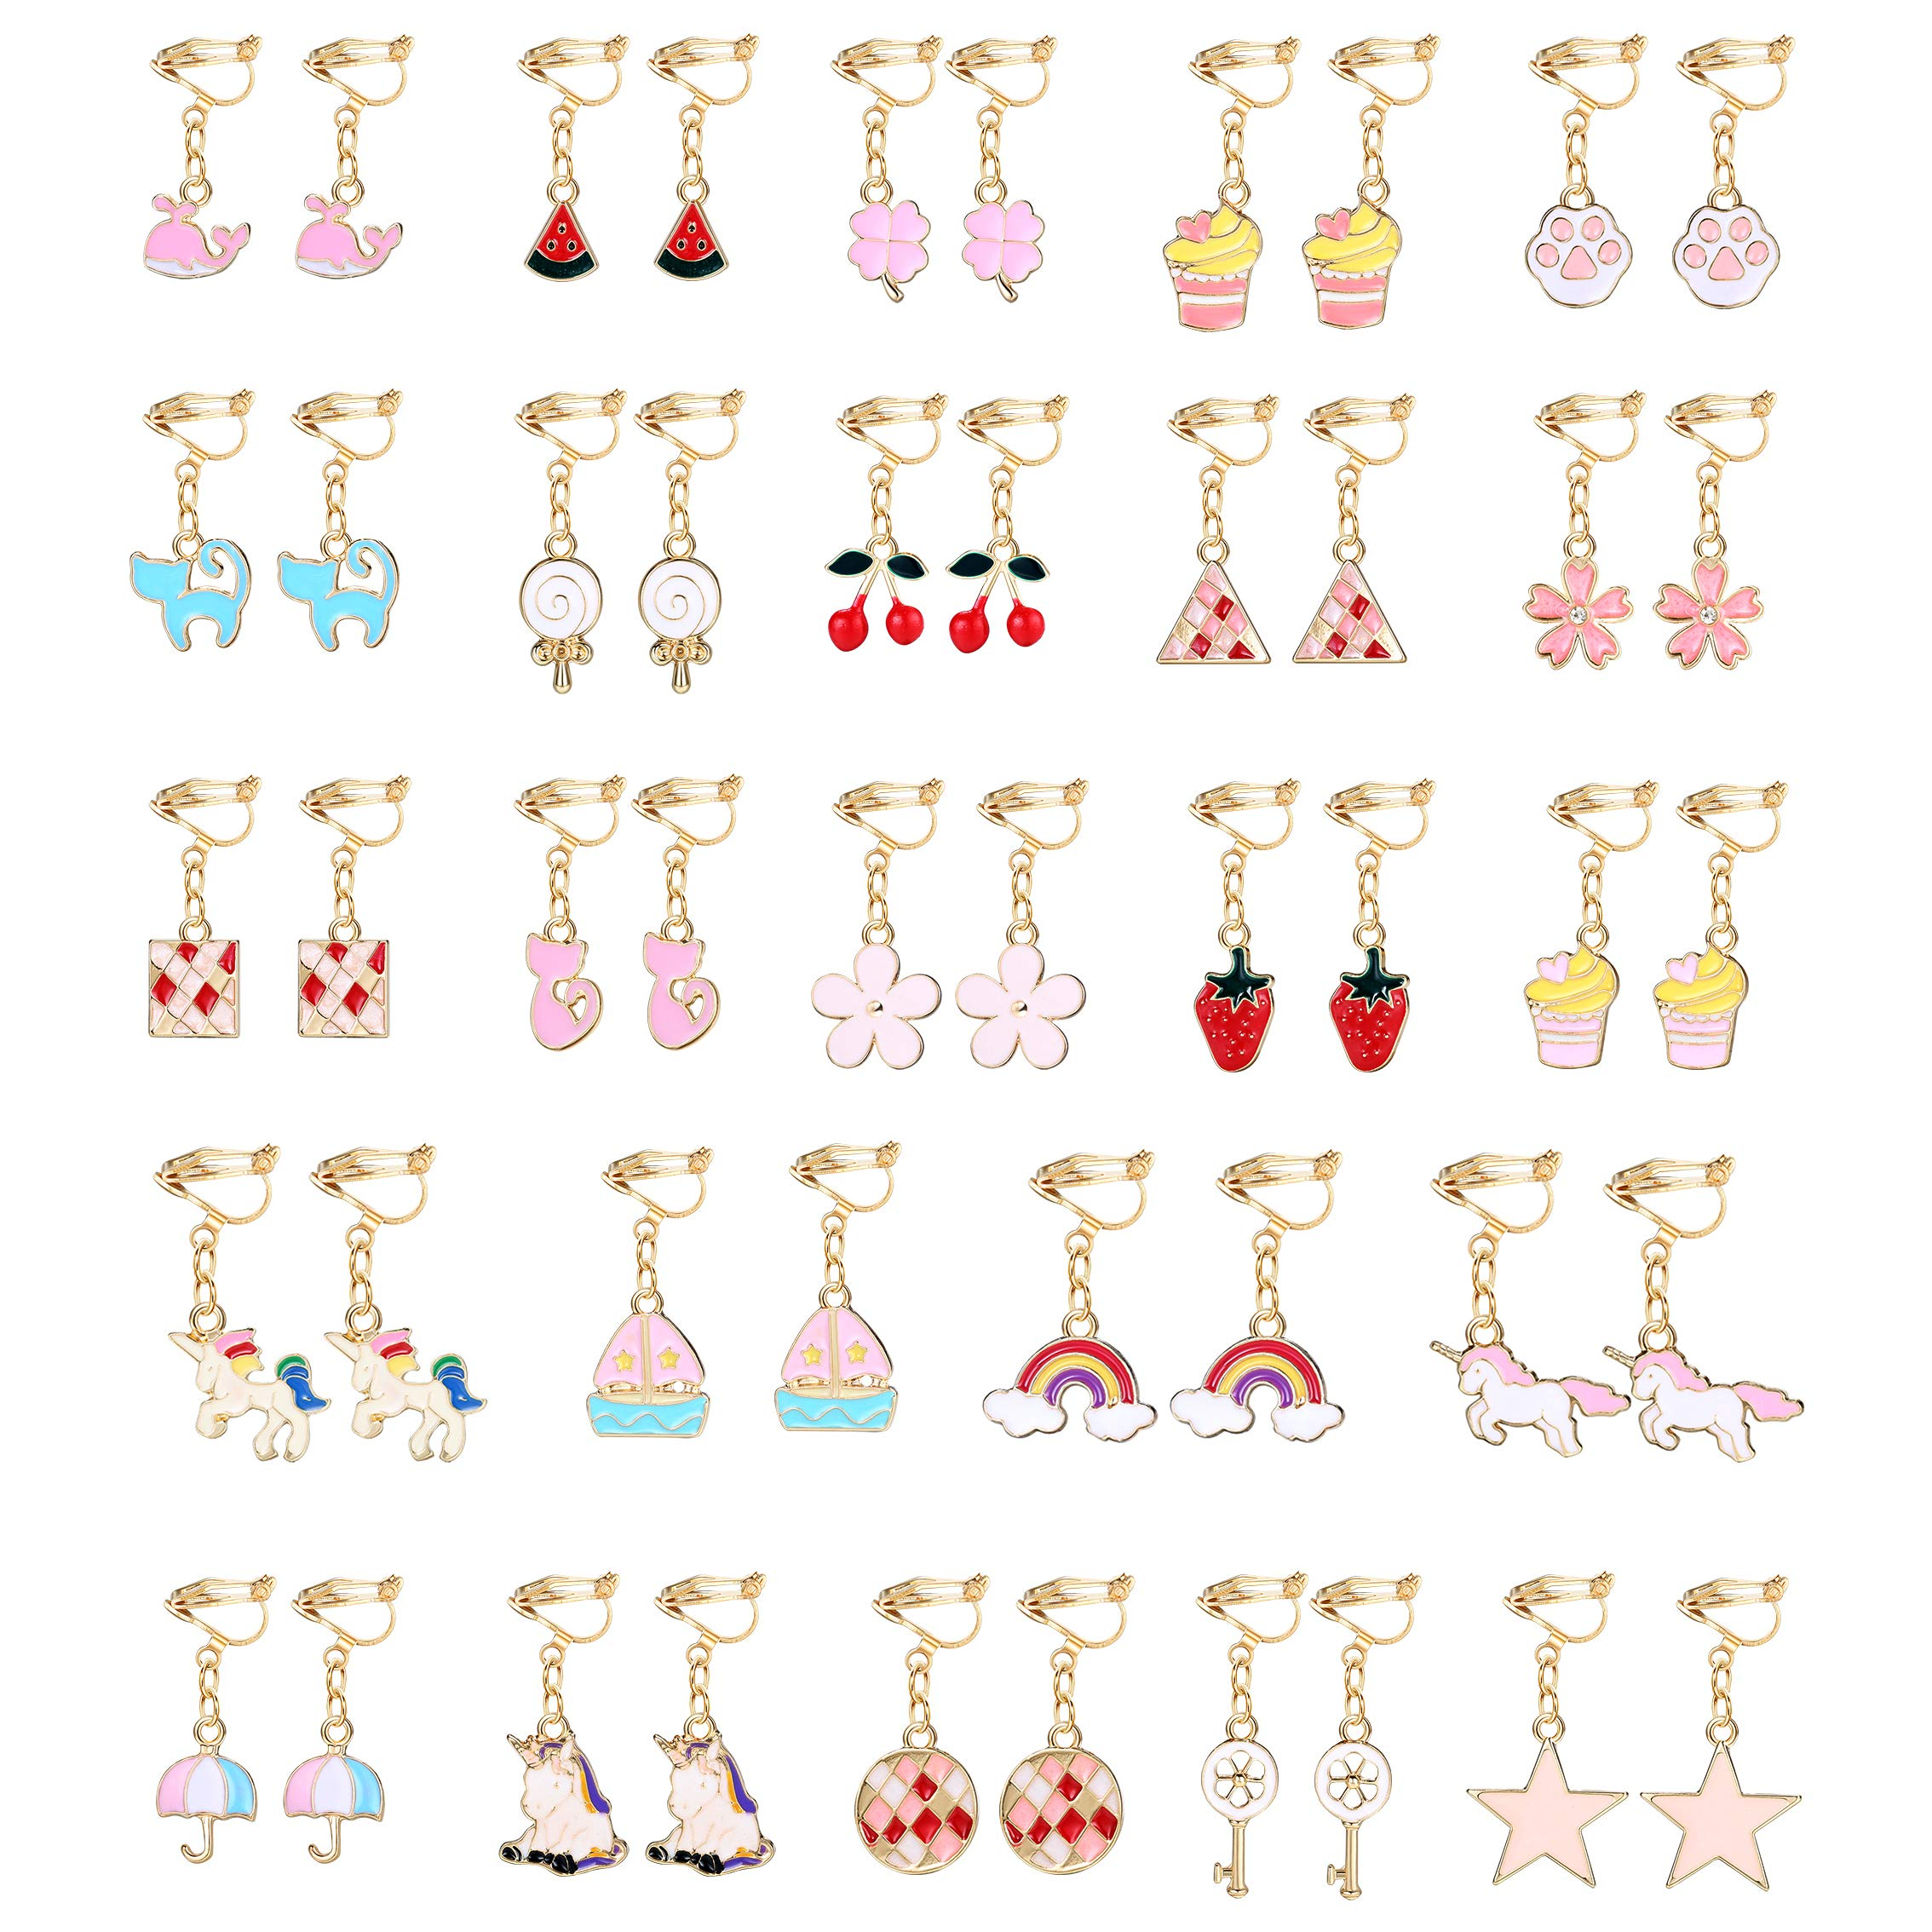 Hanpabum 24 Pairs Pink Clip On Earrings for Girls Women Unicorn Rainbow Multiple Cute Animals Fruits